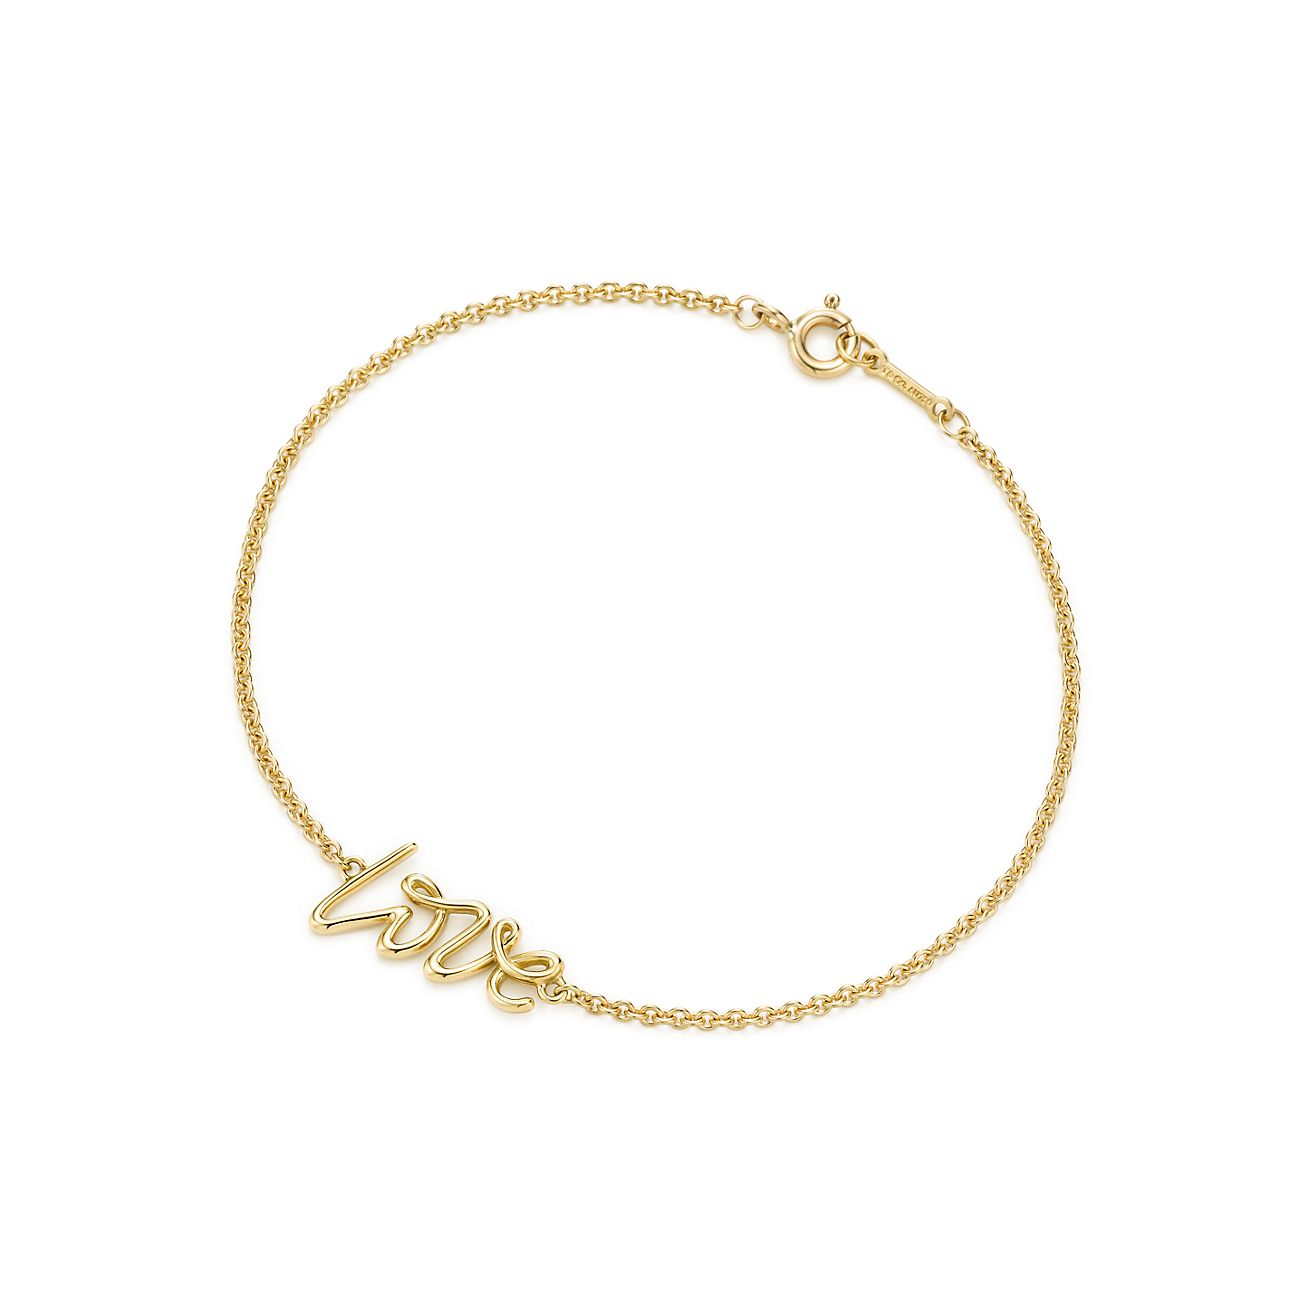 Graffiti Love Bracelet In 18k Gold